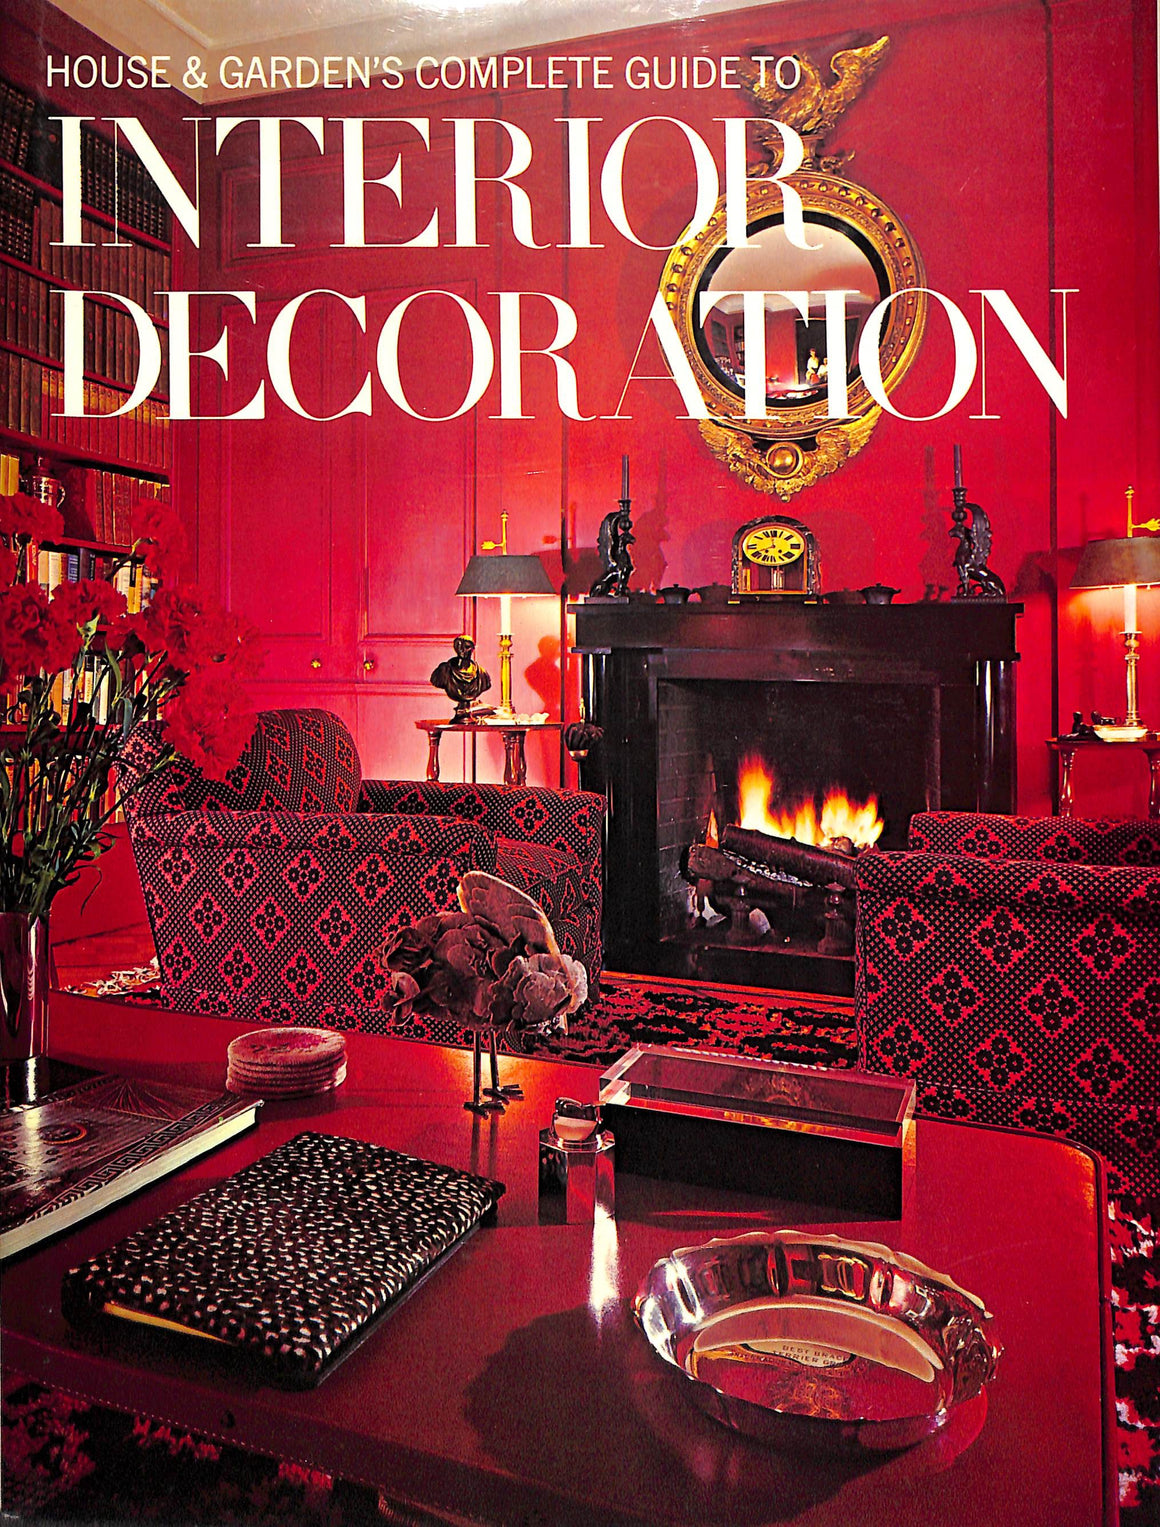 Interior Decoration by The Editors of House & Garden